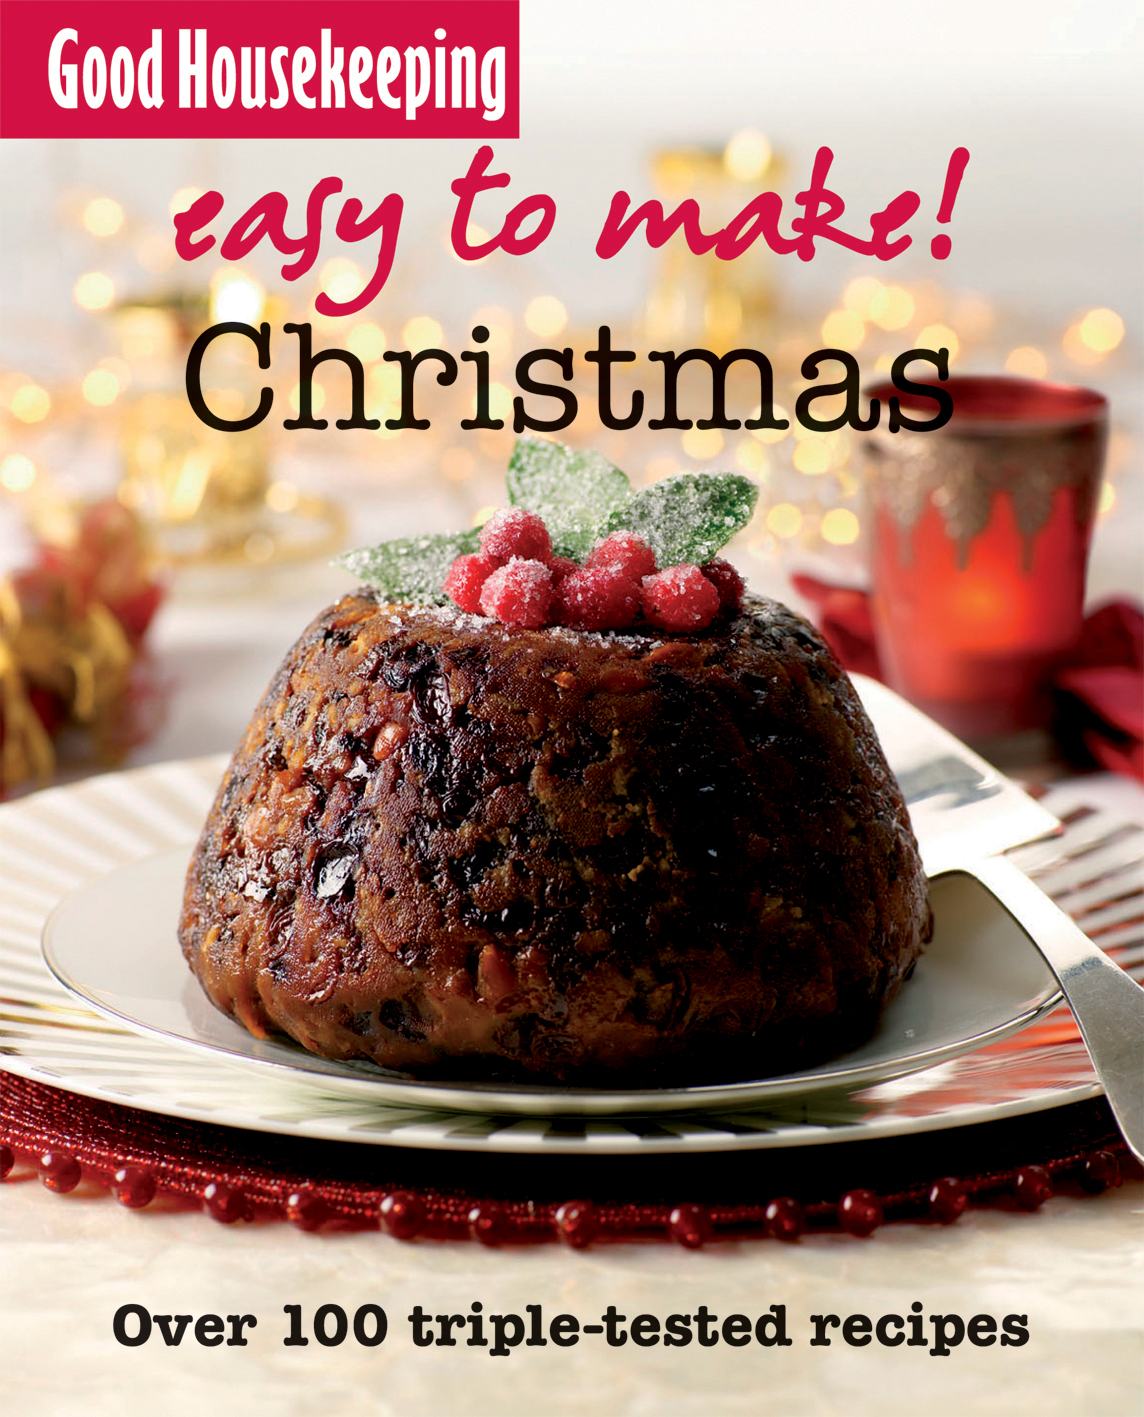 Good Housekeeping Easy to Make! Christmas